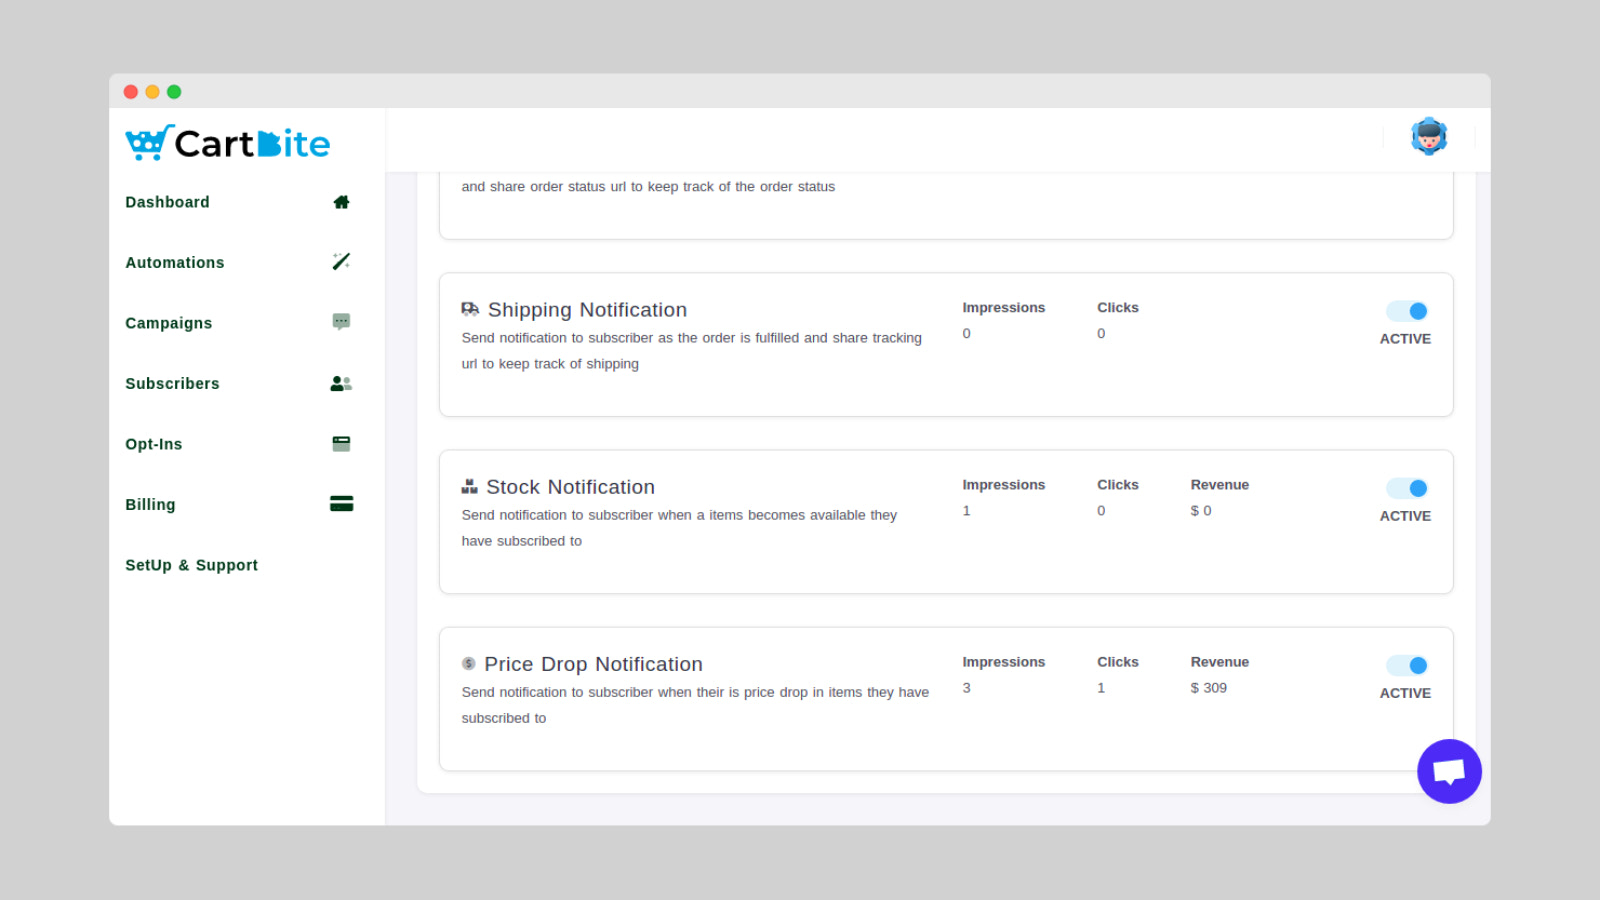 Back In Stock & Price Drop Automation